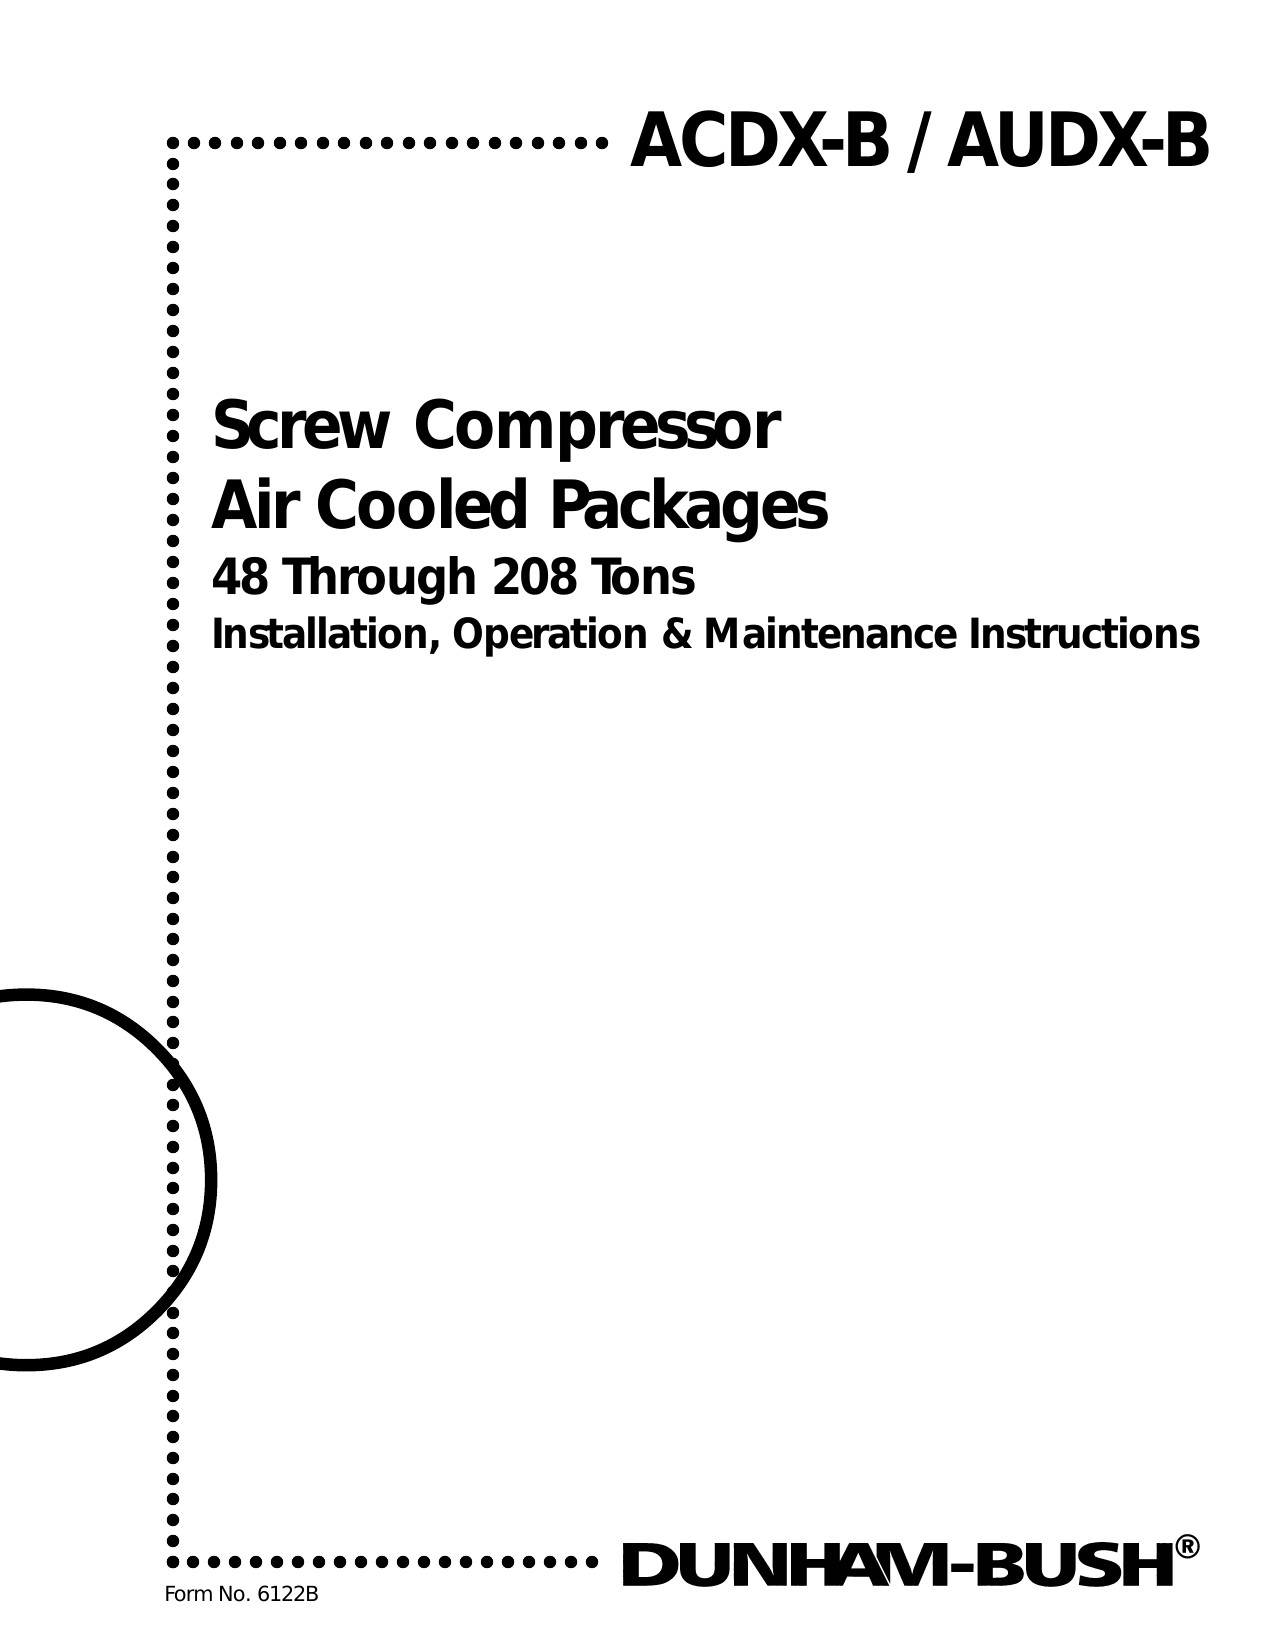 Tecumseh How to Re-wire Relay for Compressor Screw Pressor Air Cooled Packages Acdx B Audx B Of Tecumseh How to Re-wire Relay for Compressor